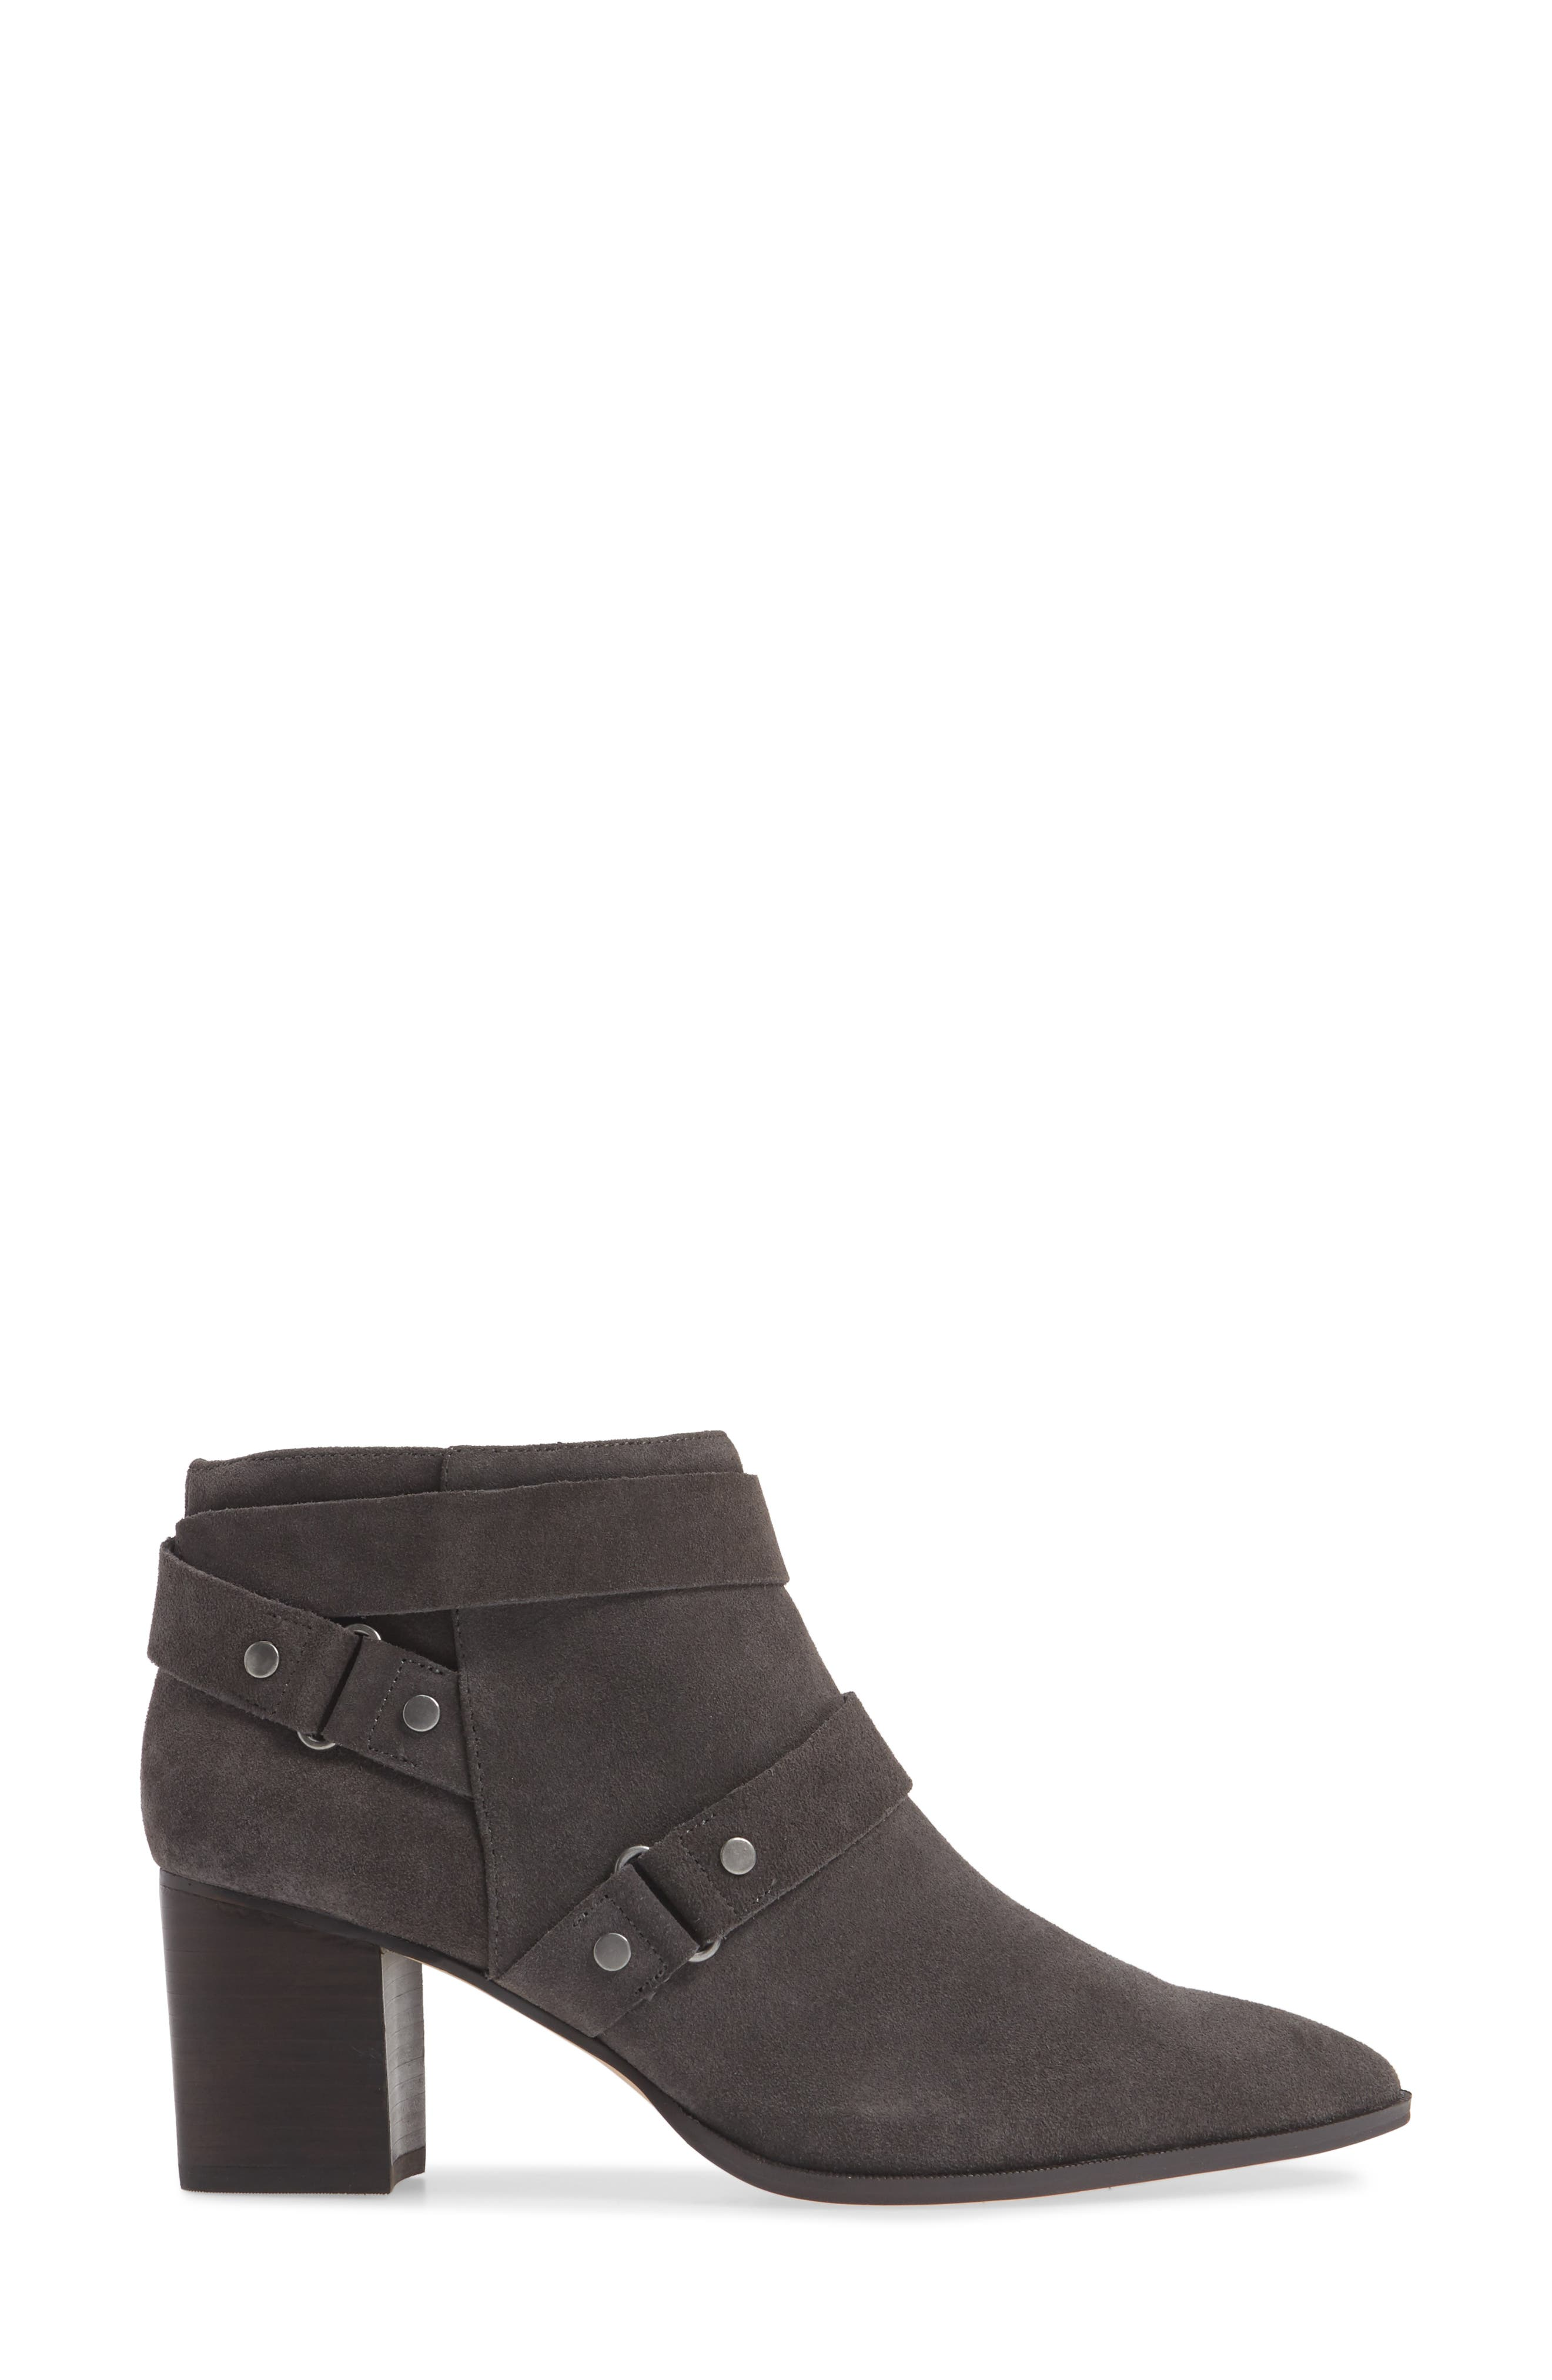 SOLE SOCIETY,                             Dariela Strappy Bootie,                             Alternate thumbnail 3, color,                             IRON SUEDE